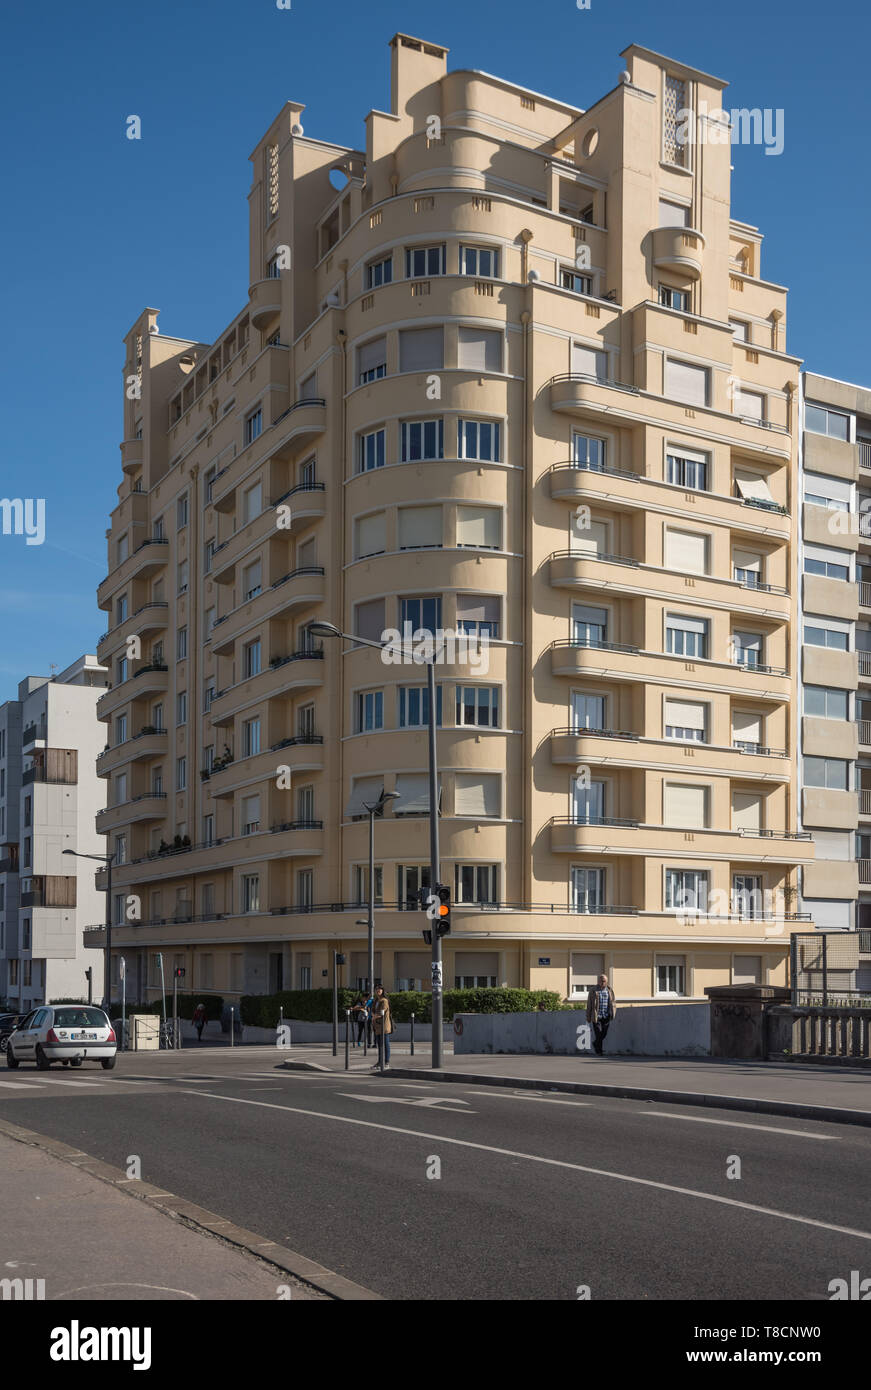 Lyon Avenue Freres Lumiere Art Deco Wohnhaus Stock Photo Alamy - Deco Lyon